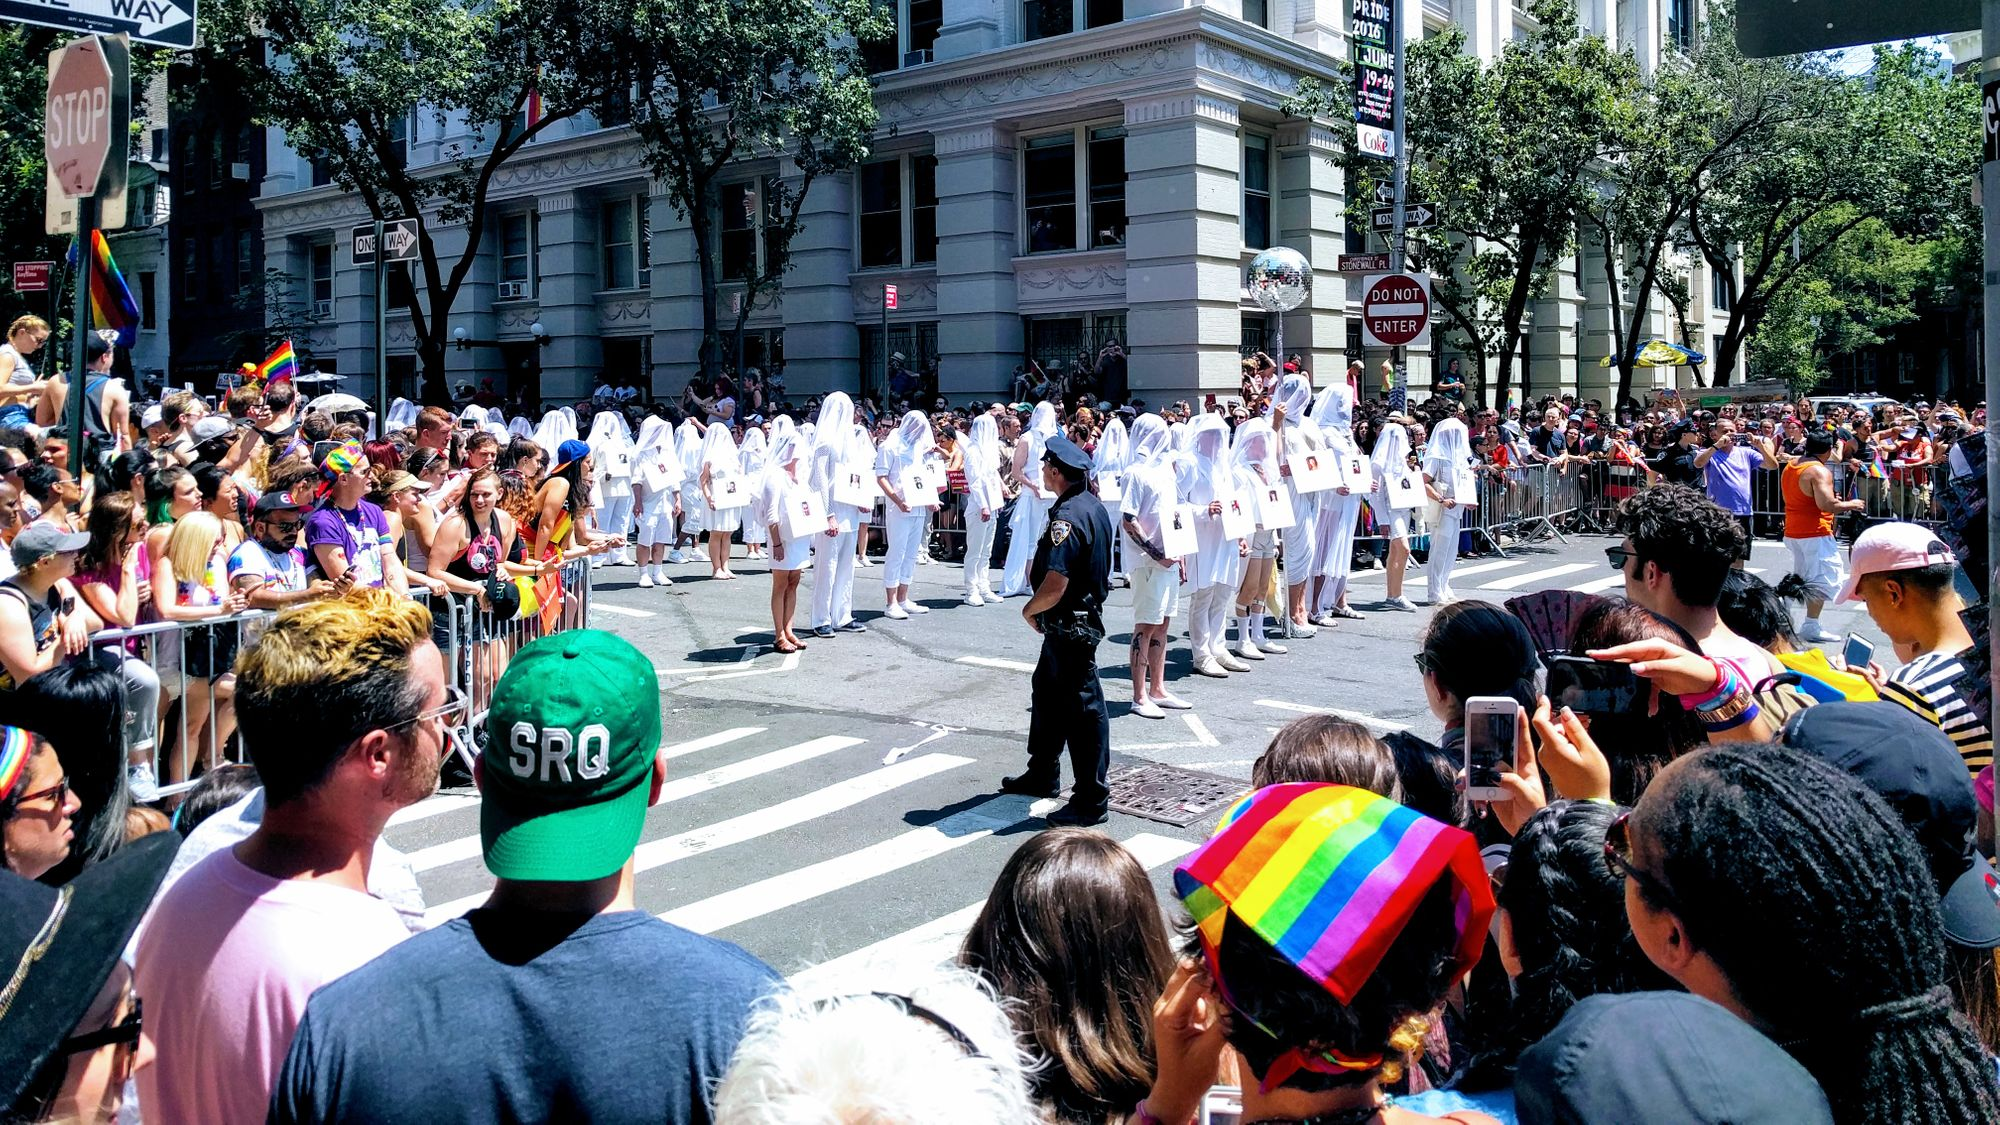 A crowd of people, many rainbow flags among them, look on the parade at an intersection. Rows of people dressed in white with shrouds stand in the intersection, each one representing someone killed in the Pulse shooting.